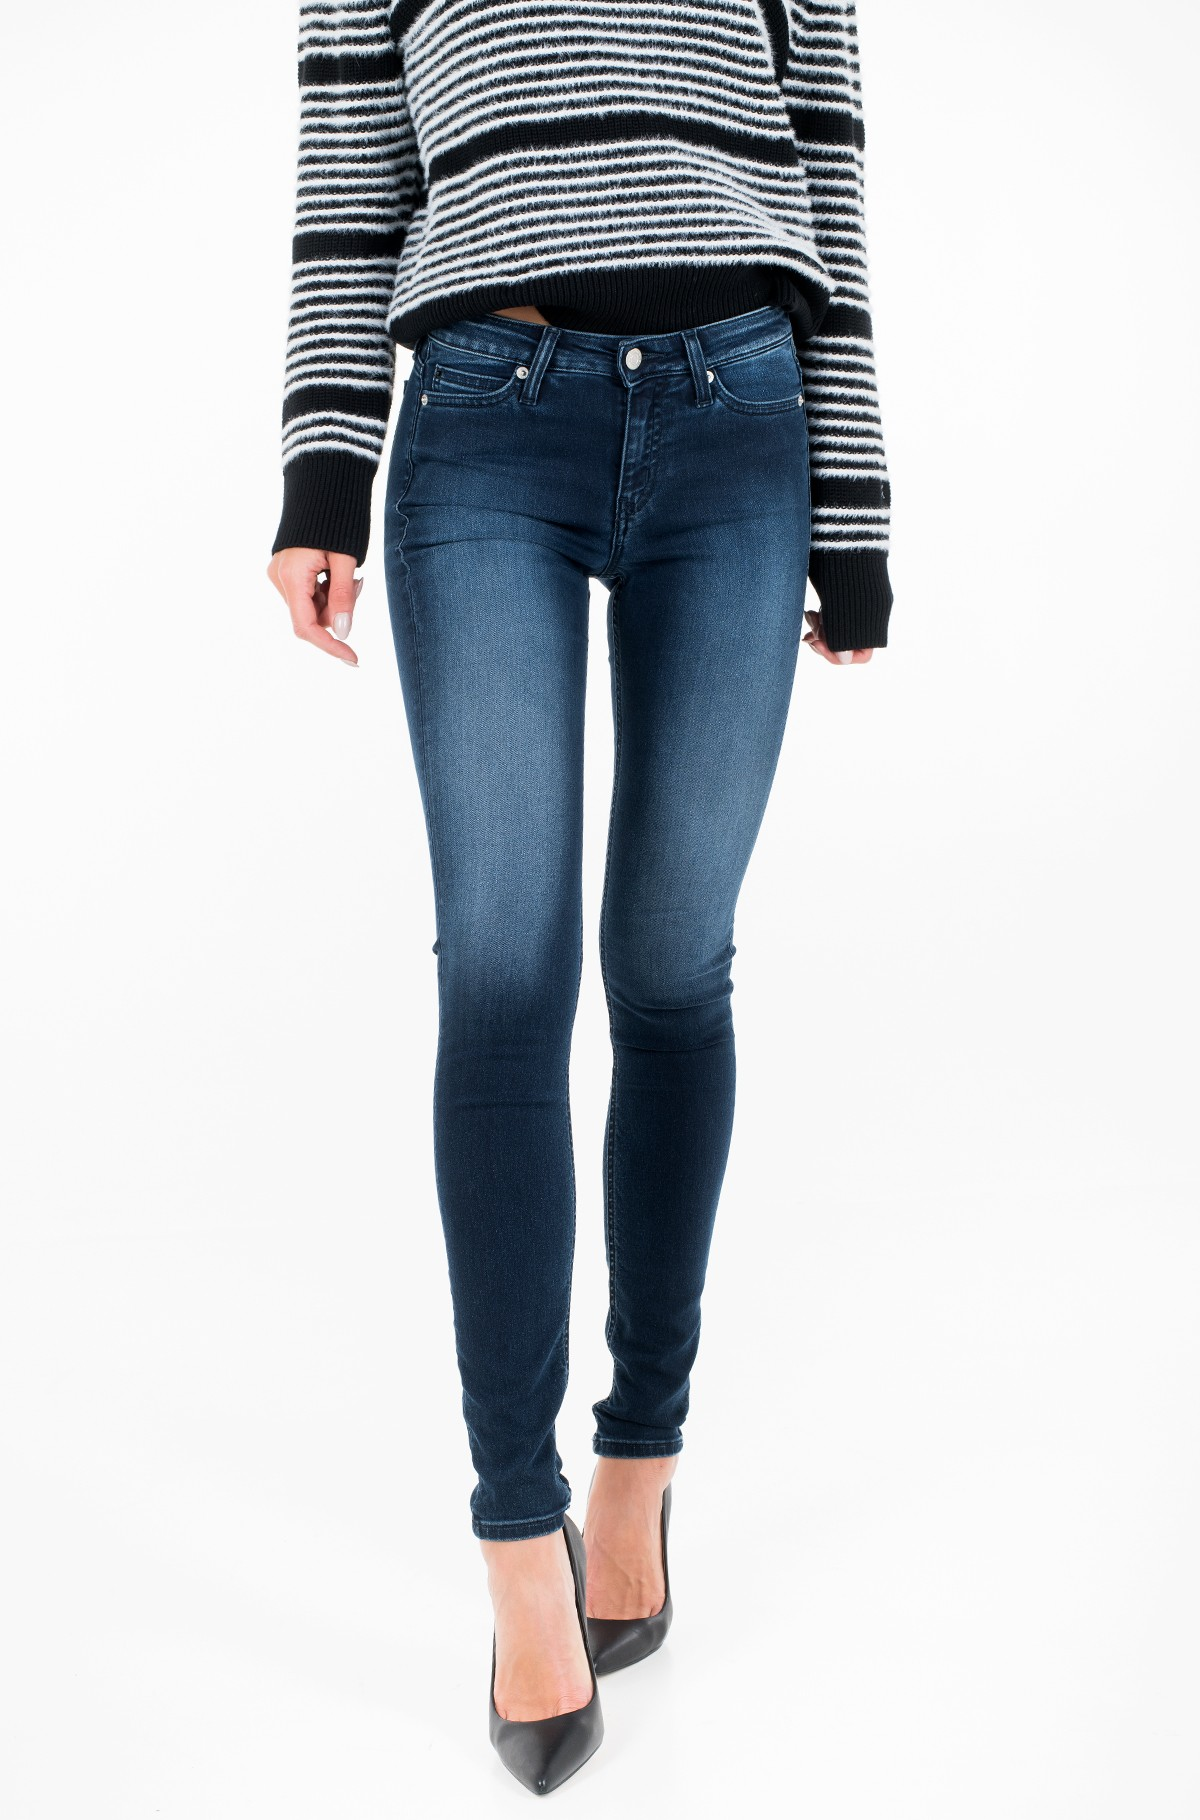 Jeans CKJ 001 SUPER SKINNY-full-1